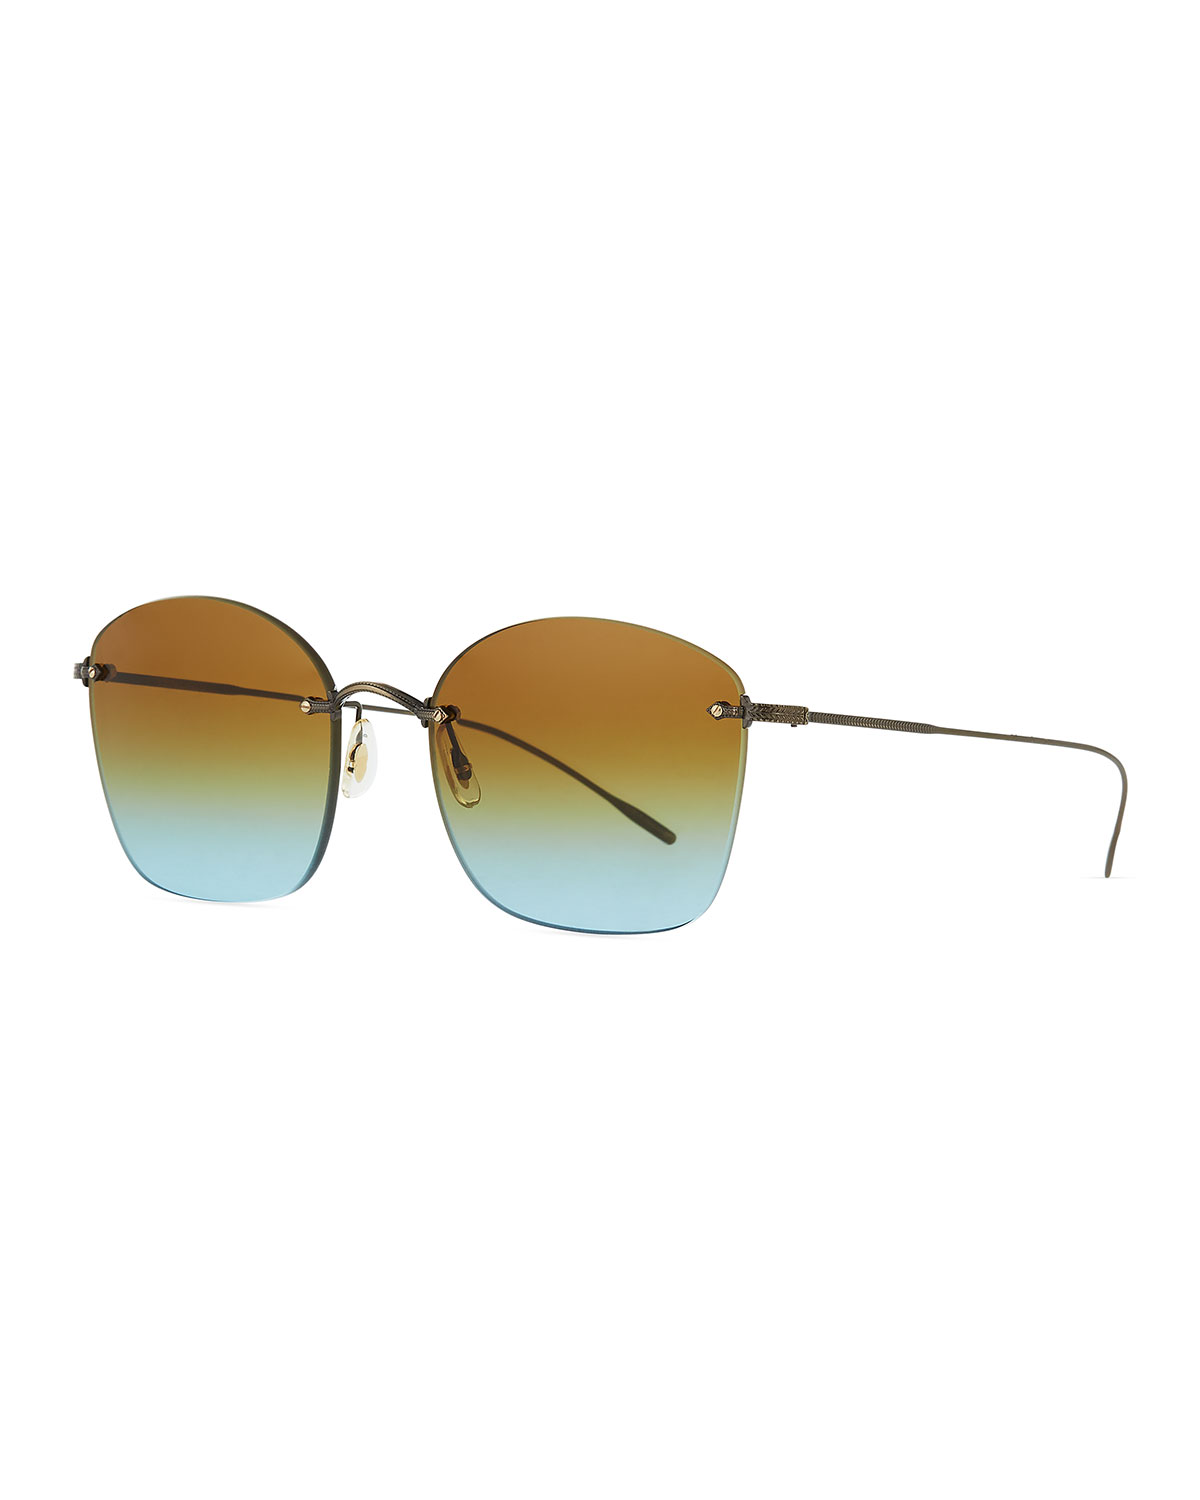 Oliver Peoples Sunglasses SQUARE RIMLESS ENGRAVED SUNGLASSES